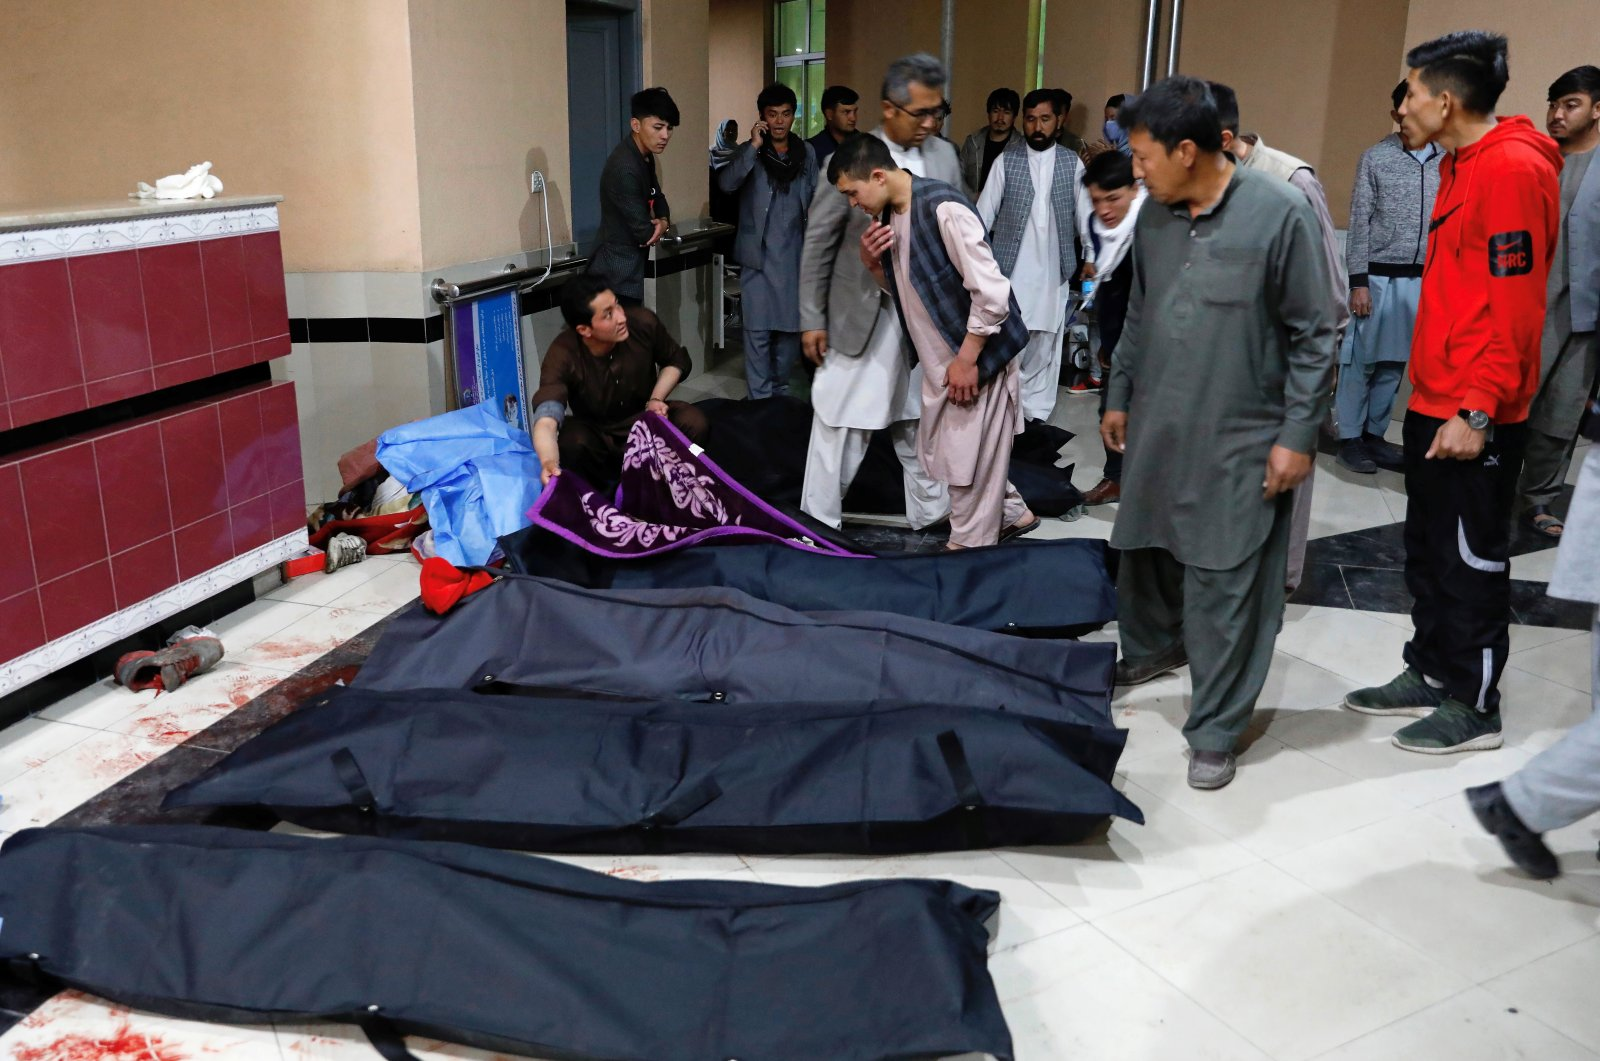 Afghan men look for their relatives at a hospital after a suicide bombing in Kabul, Afghanistan Oct. 24, 2020. (Reuters Photo)